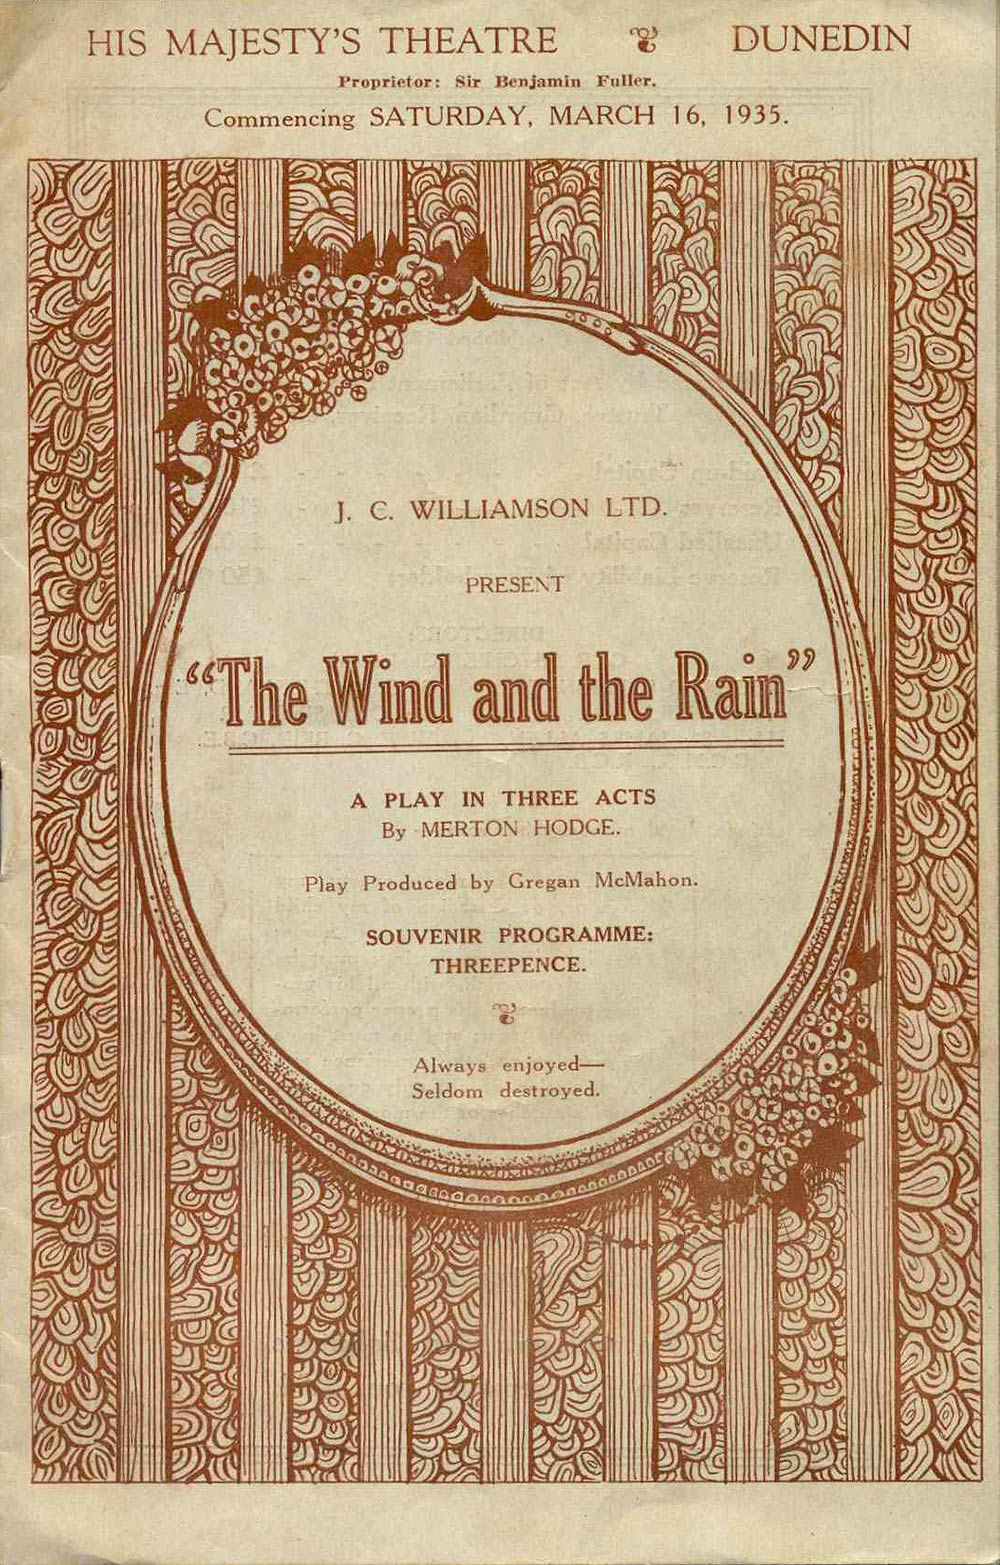 <em>The wind and the rain</em>. Merton Hodge. (J.C. Williamson Ltd.). His Majesty's Theatre, Dunedin, Mar. 16, 1935.